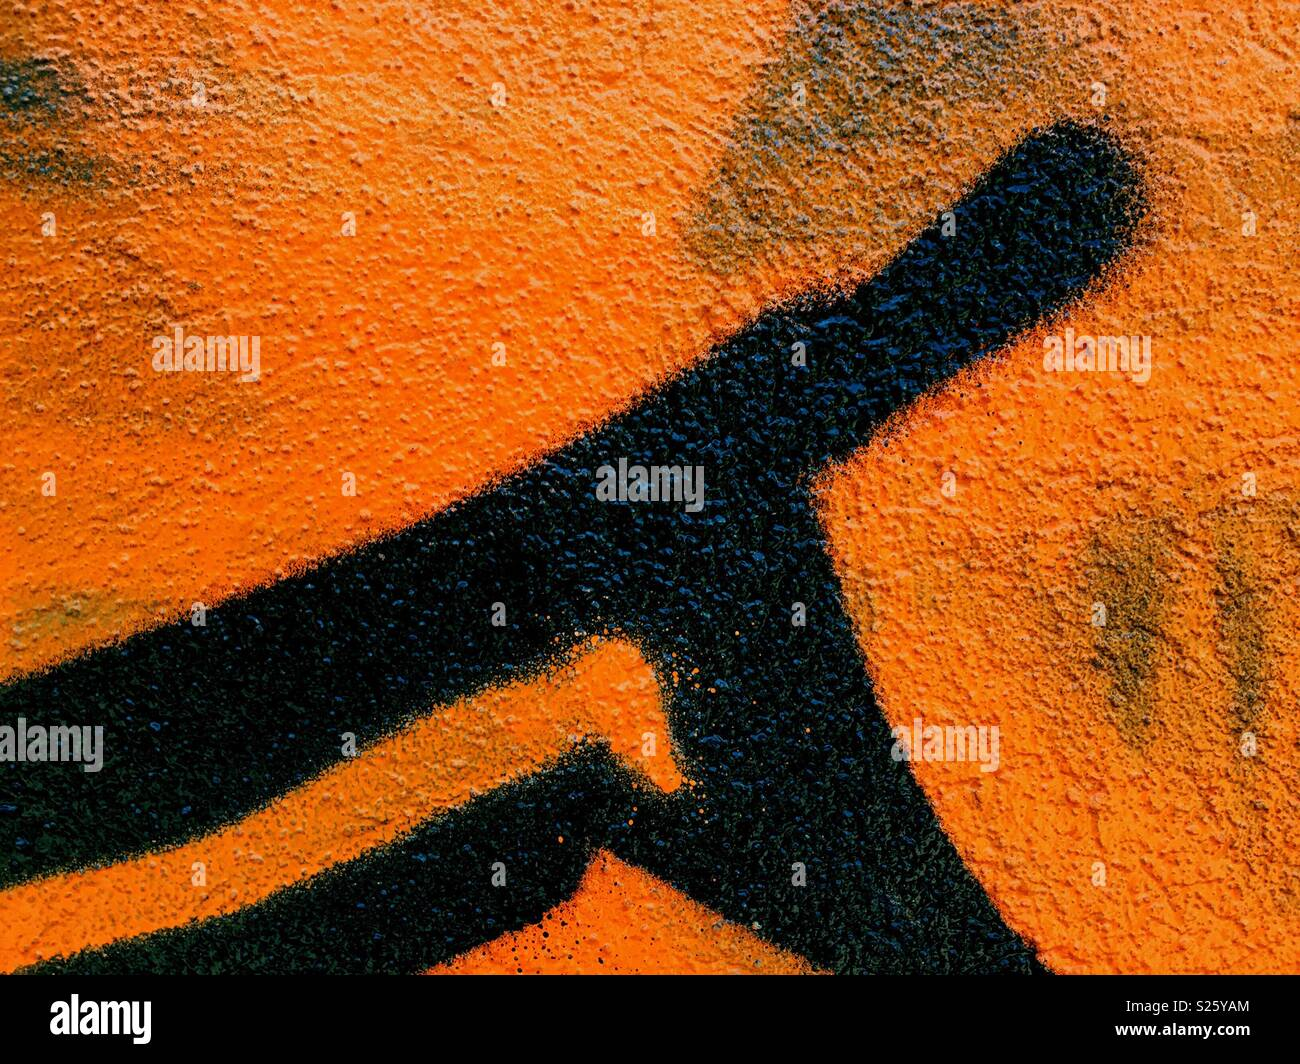 Abstract - Stock Image